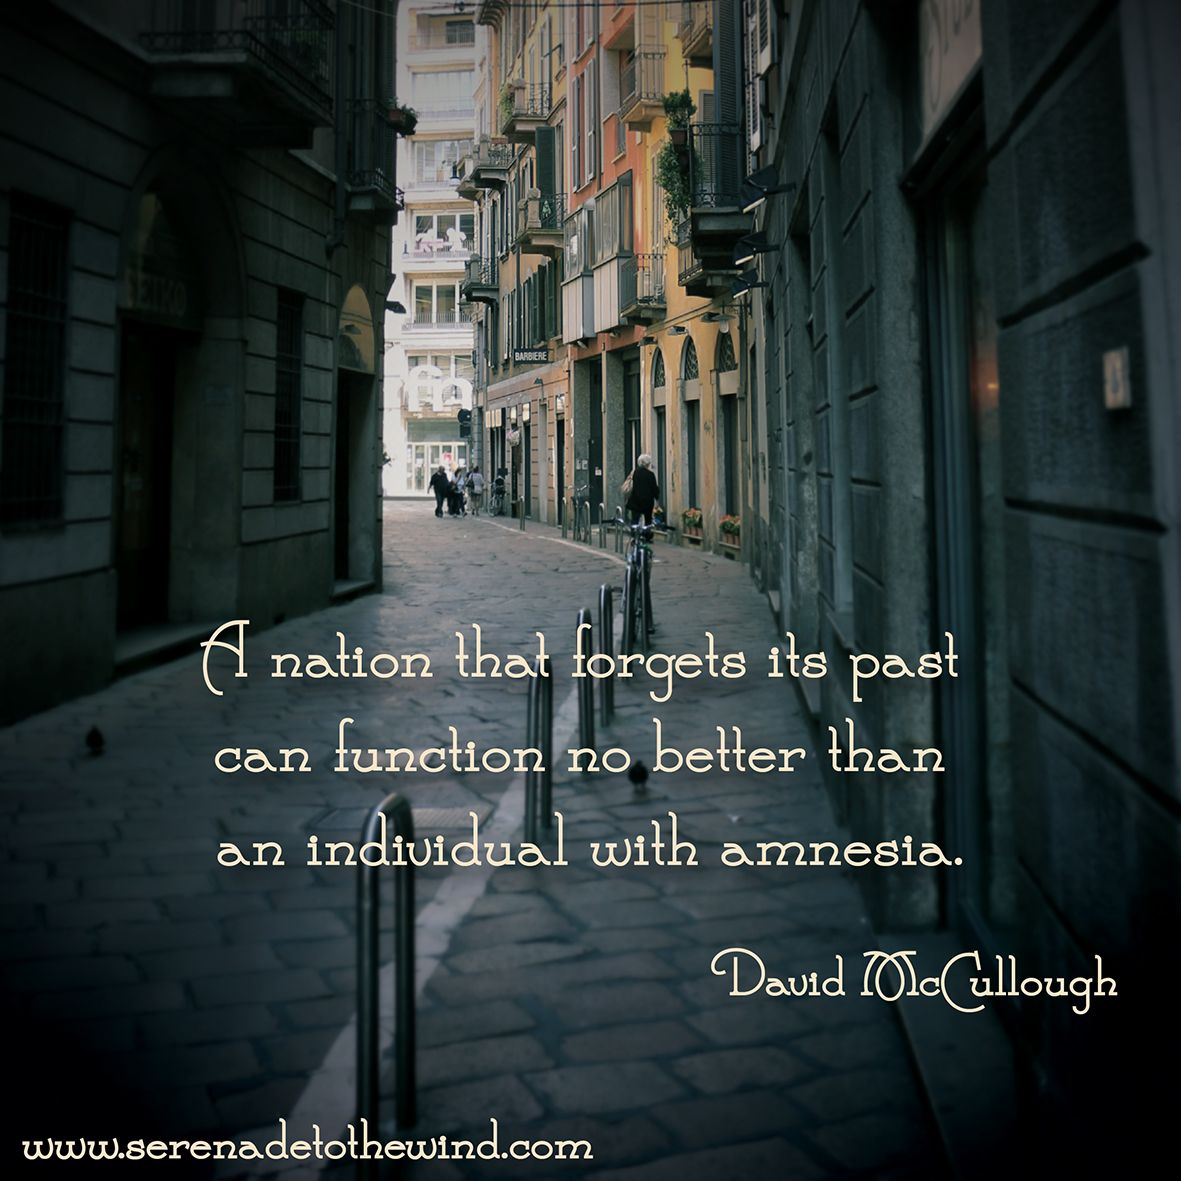 A nation that forgets its past can function no better than an individual with amnesia.   - David McCullough